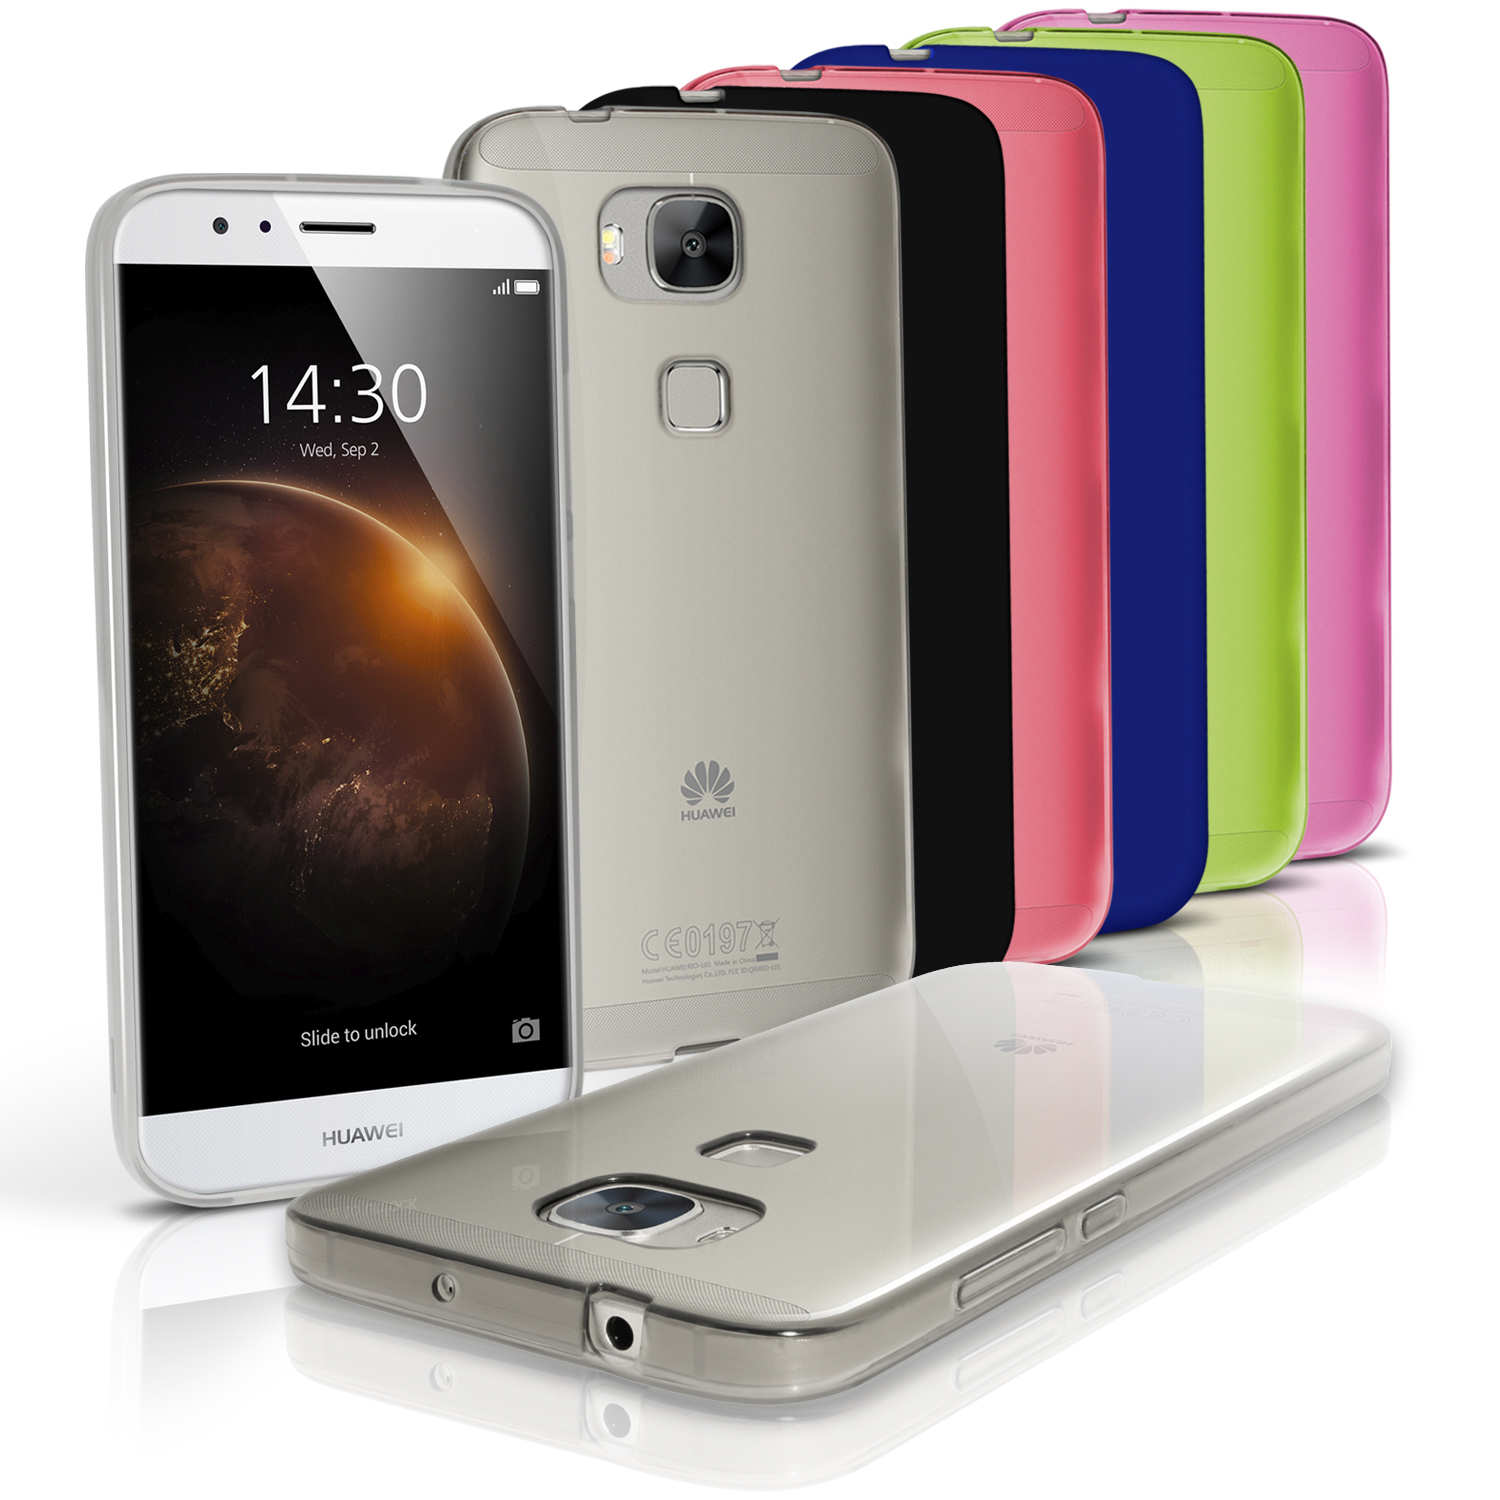 iGadgitz Glossy TPU Gel Skin Case Cover for Huawei G8 + Screen Protector